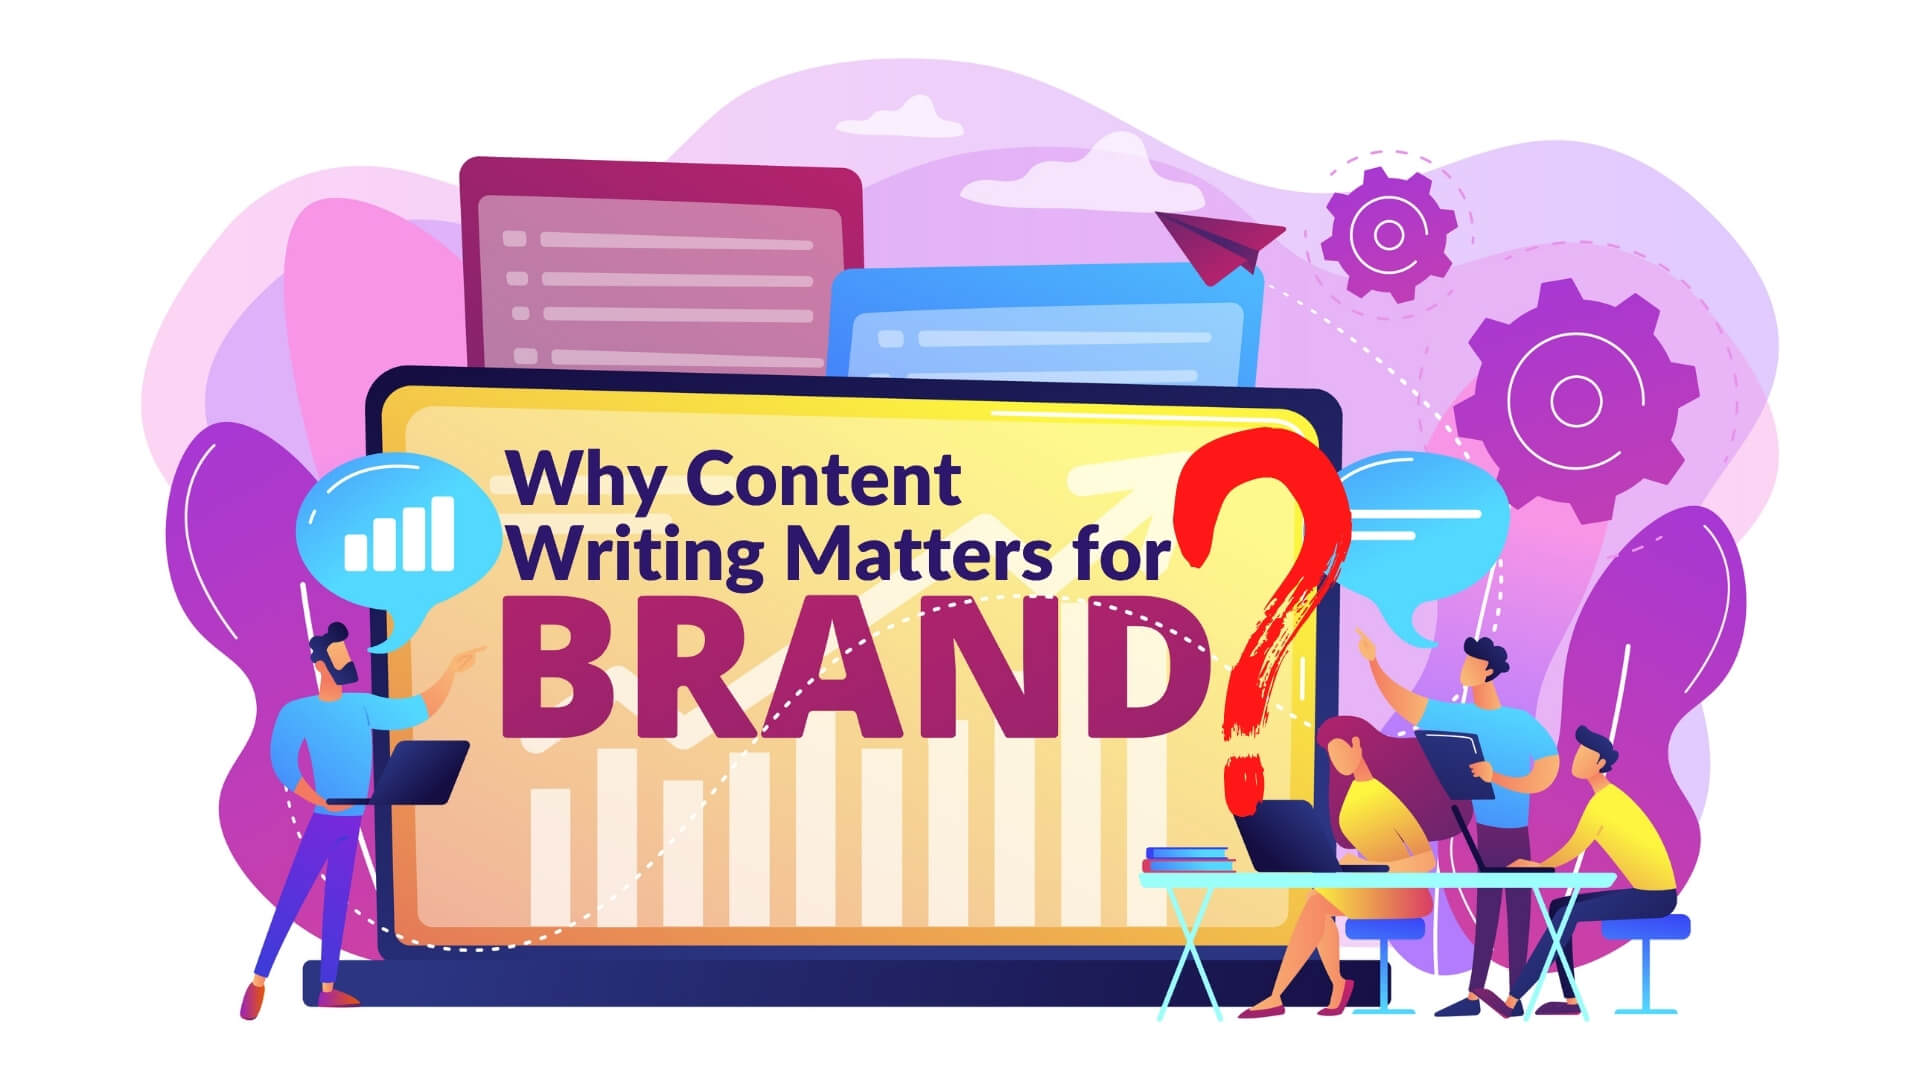 Why Content Writing Matters for Brands?